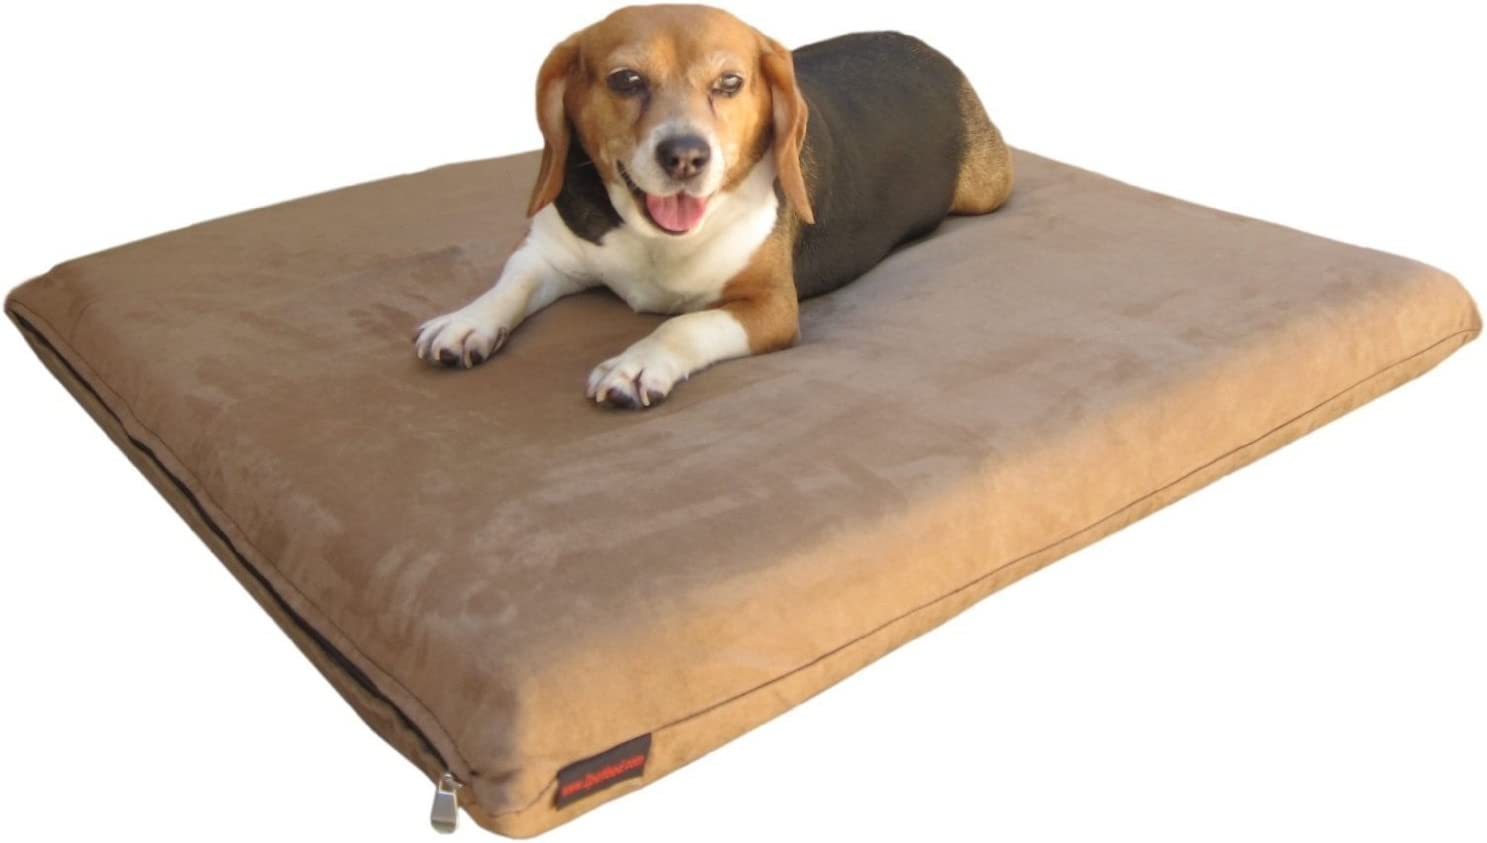 Quantity 2 Small Medium Memory Foam Pad Pet Bed External Suede cover Waterproof case for dog and cat